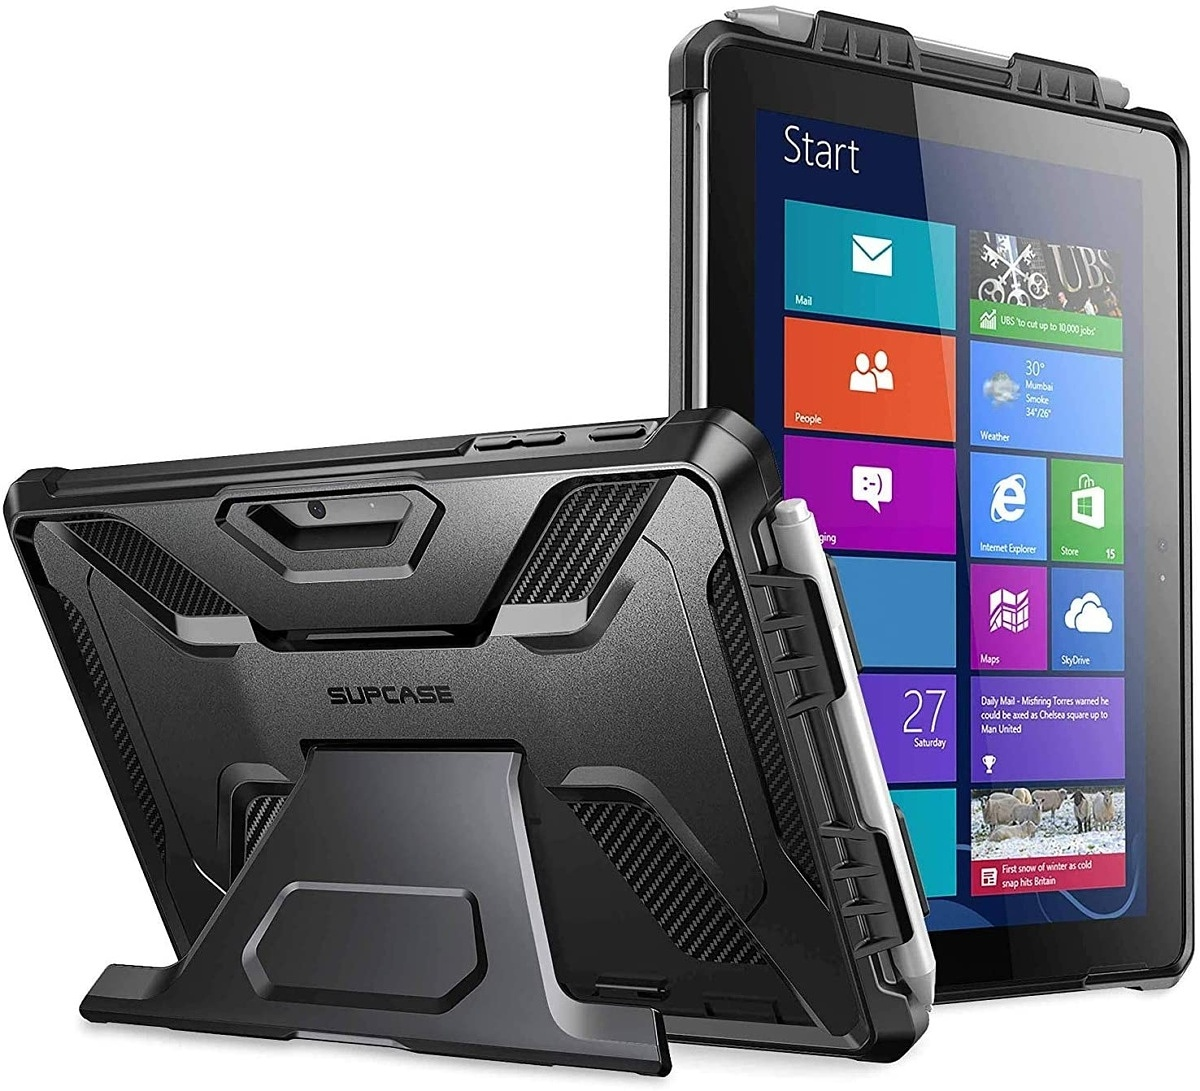 SUPCASE UB Pro Series Full-Body Kickstand Rugged Protective Case